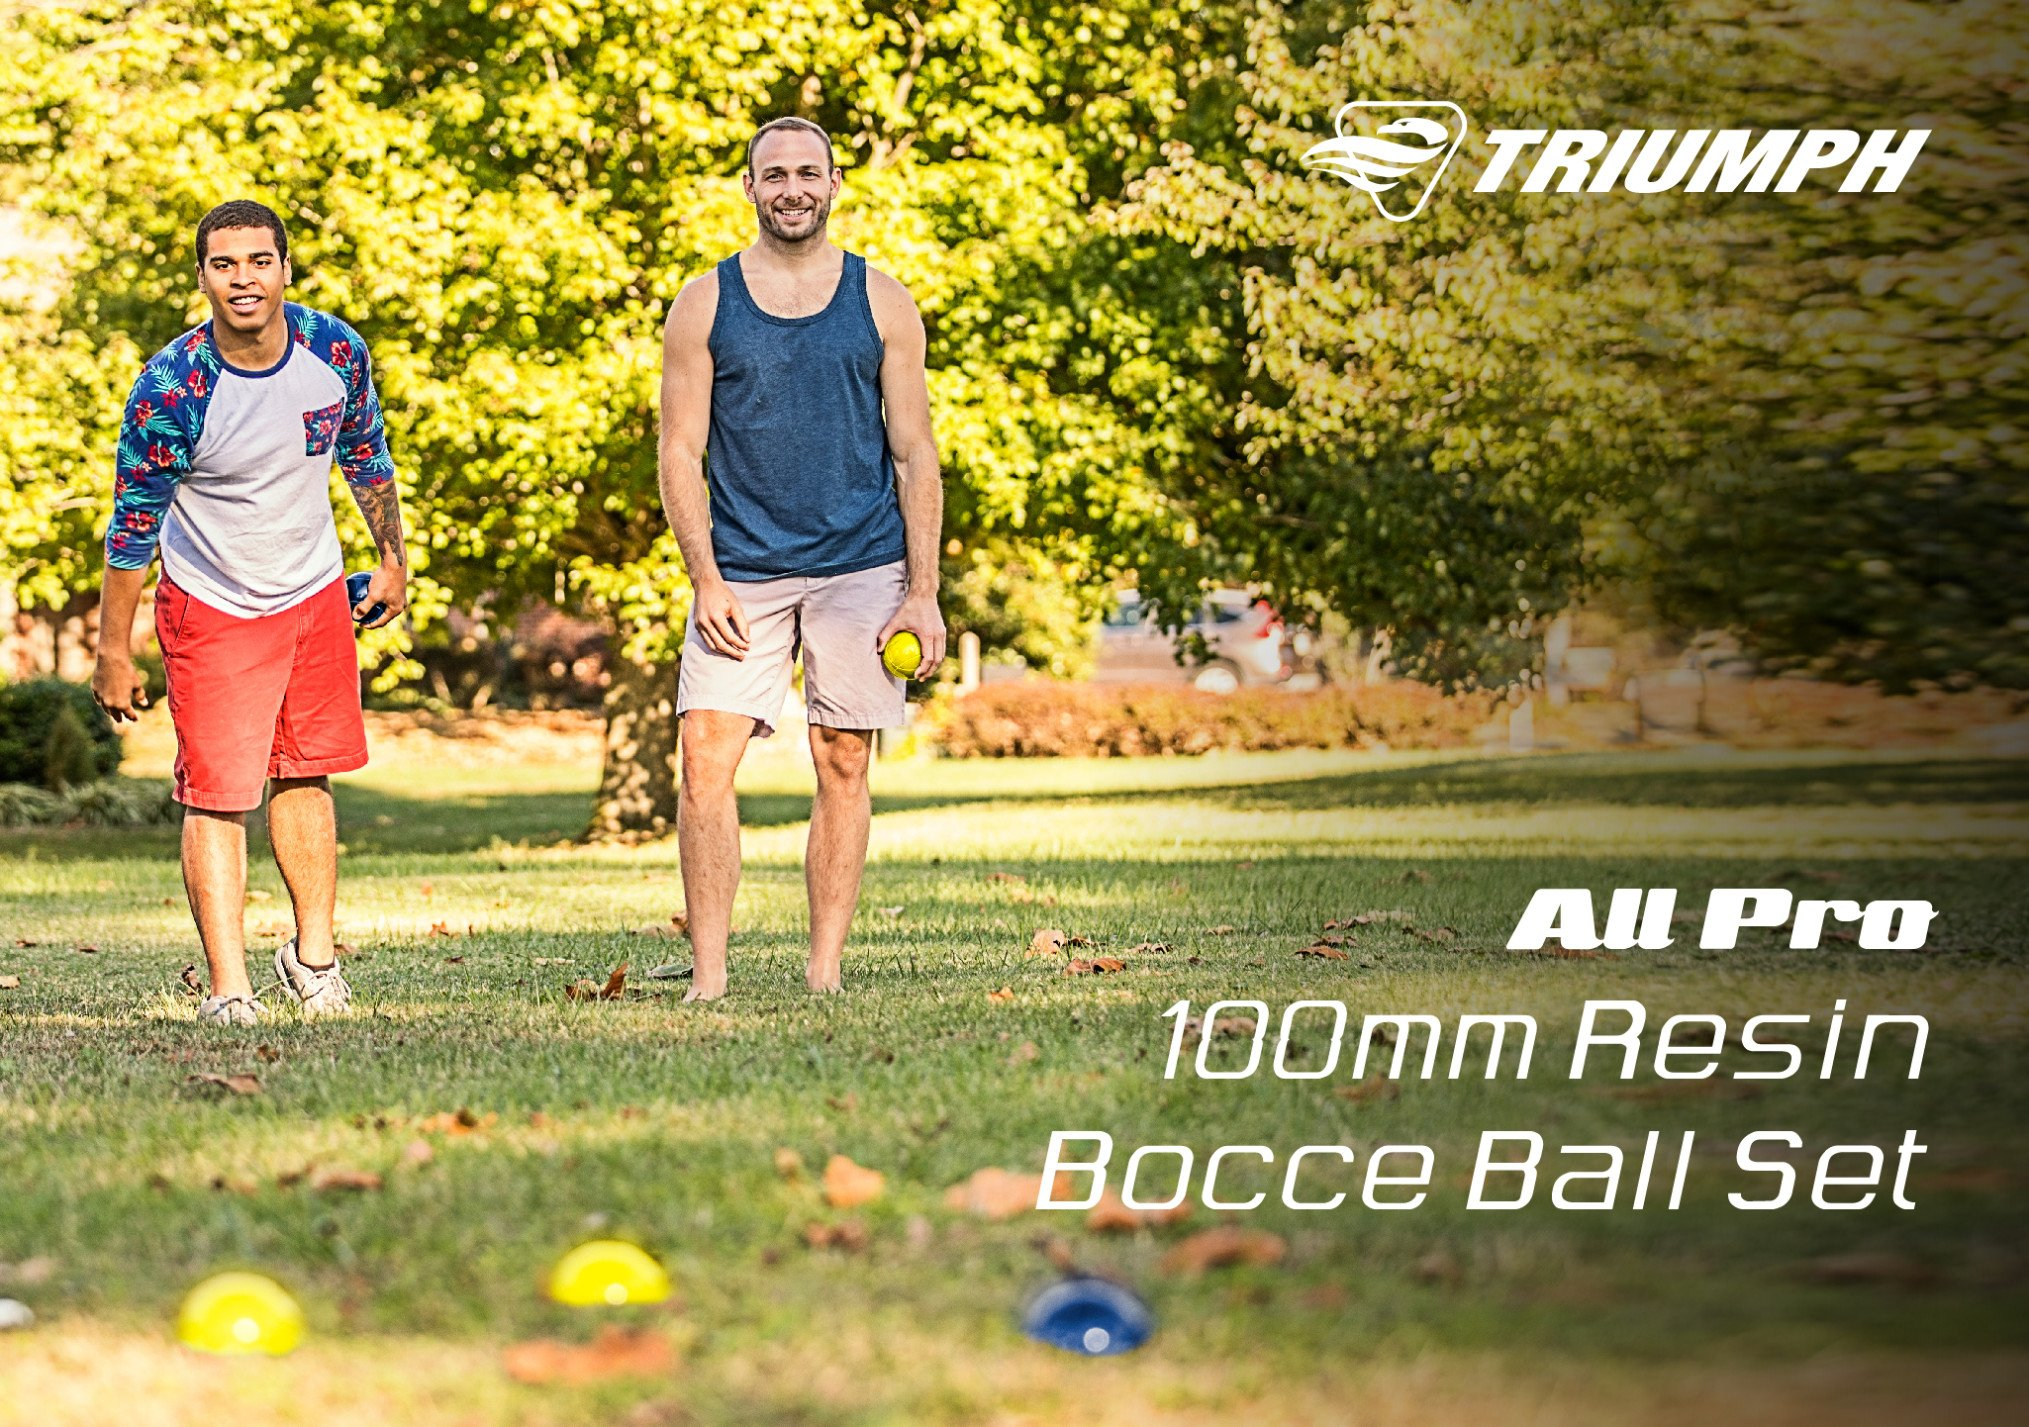 Triumph All Pro 100mm Bocce Set Includes Eight Bocce Balls, One 50mm Jack, and Carry Bag by Triumph Sports (Image #3)